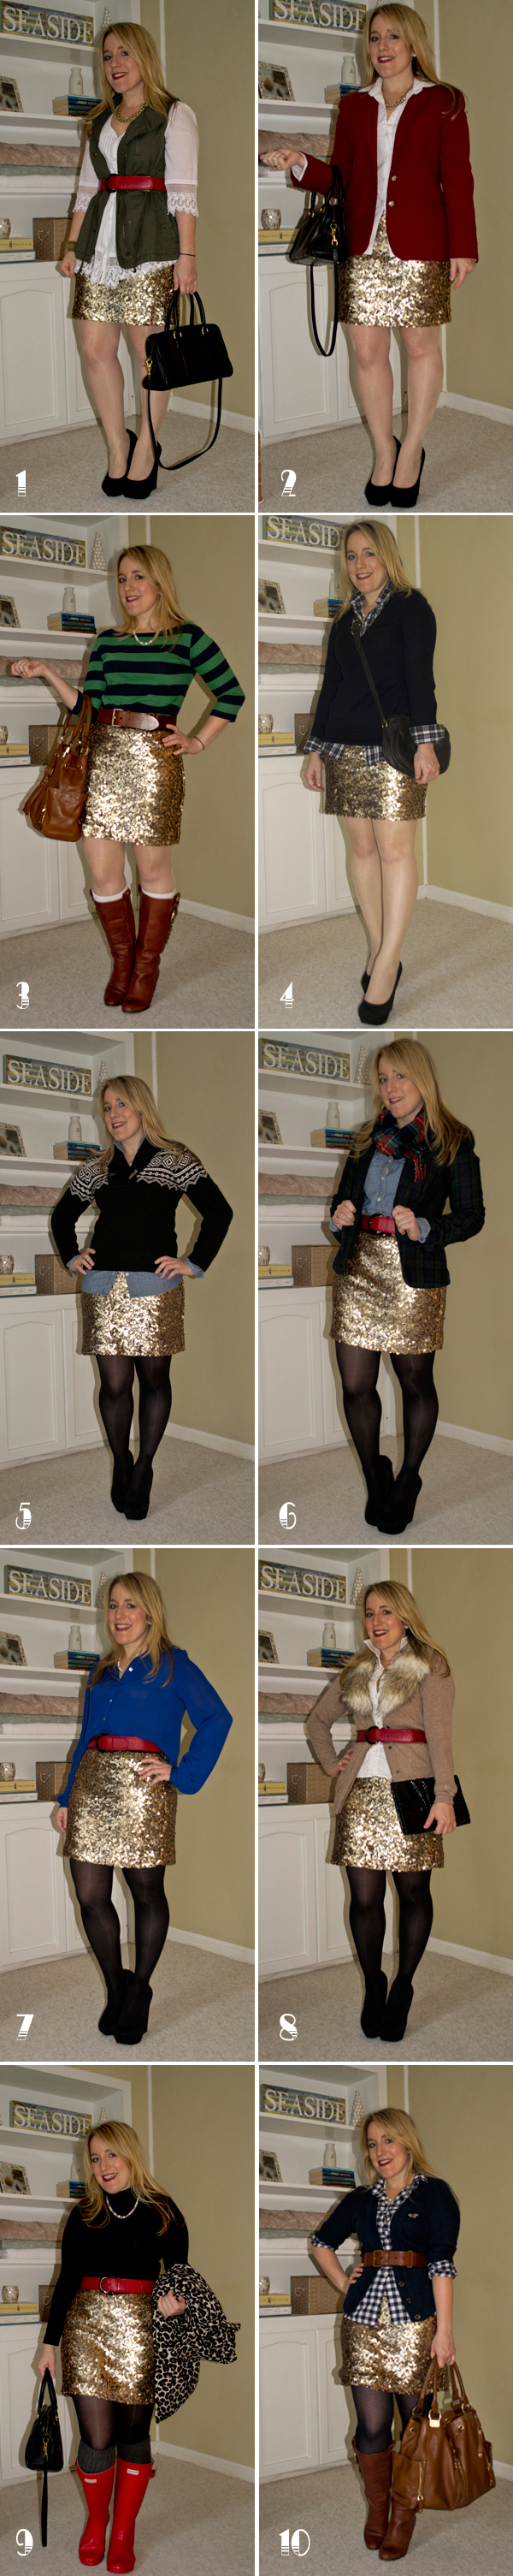 Sequin Skirt - 10 Ways